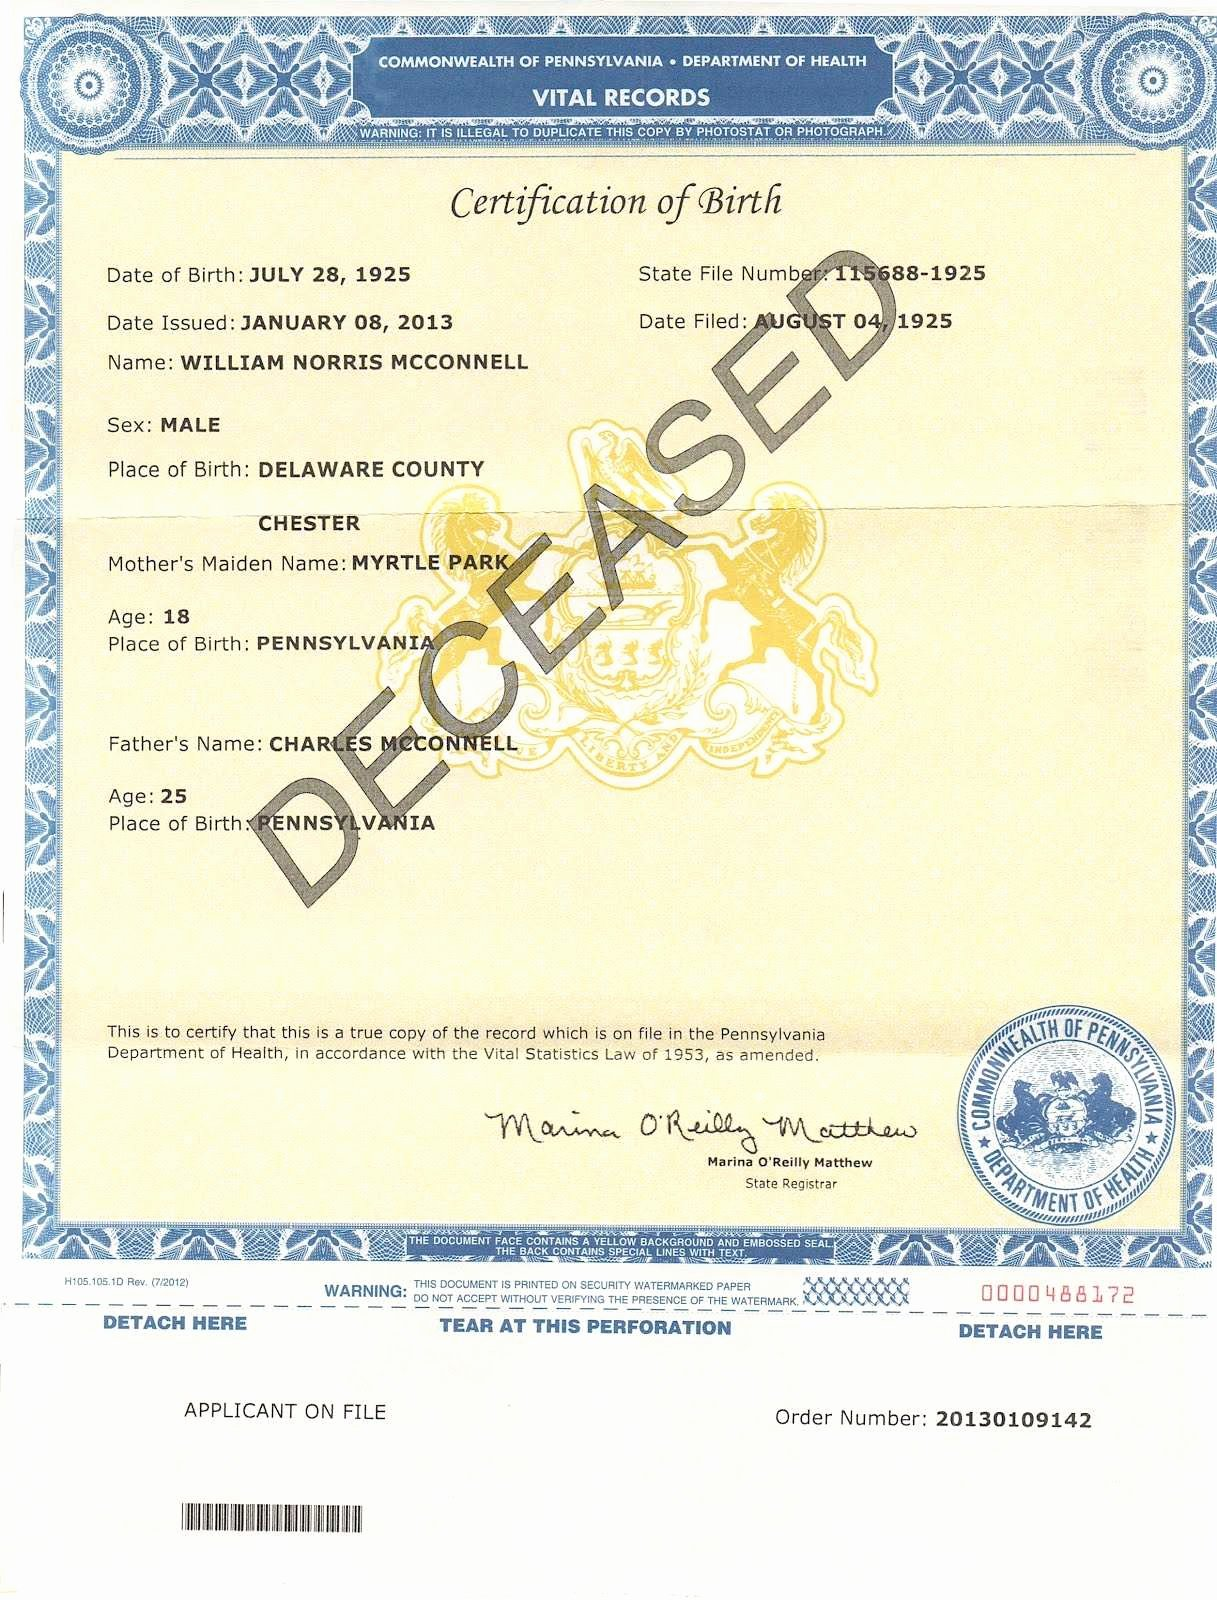 Old Birth Certificate Template Best Of 30 Useful Duplicate Birth Certificate Pa Qe Pro